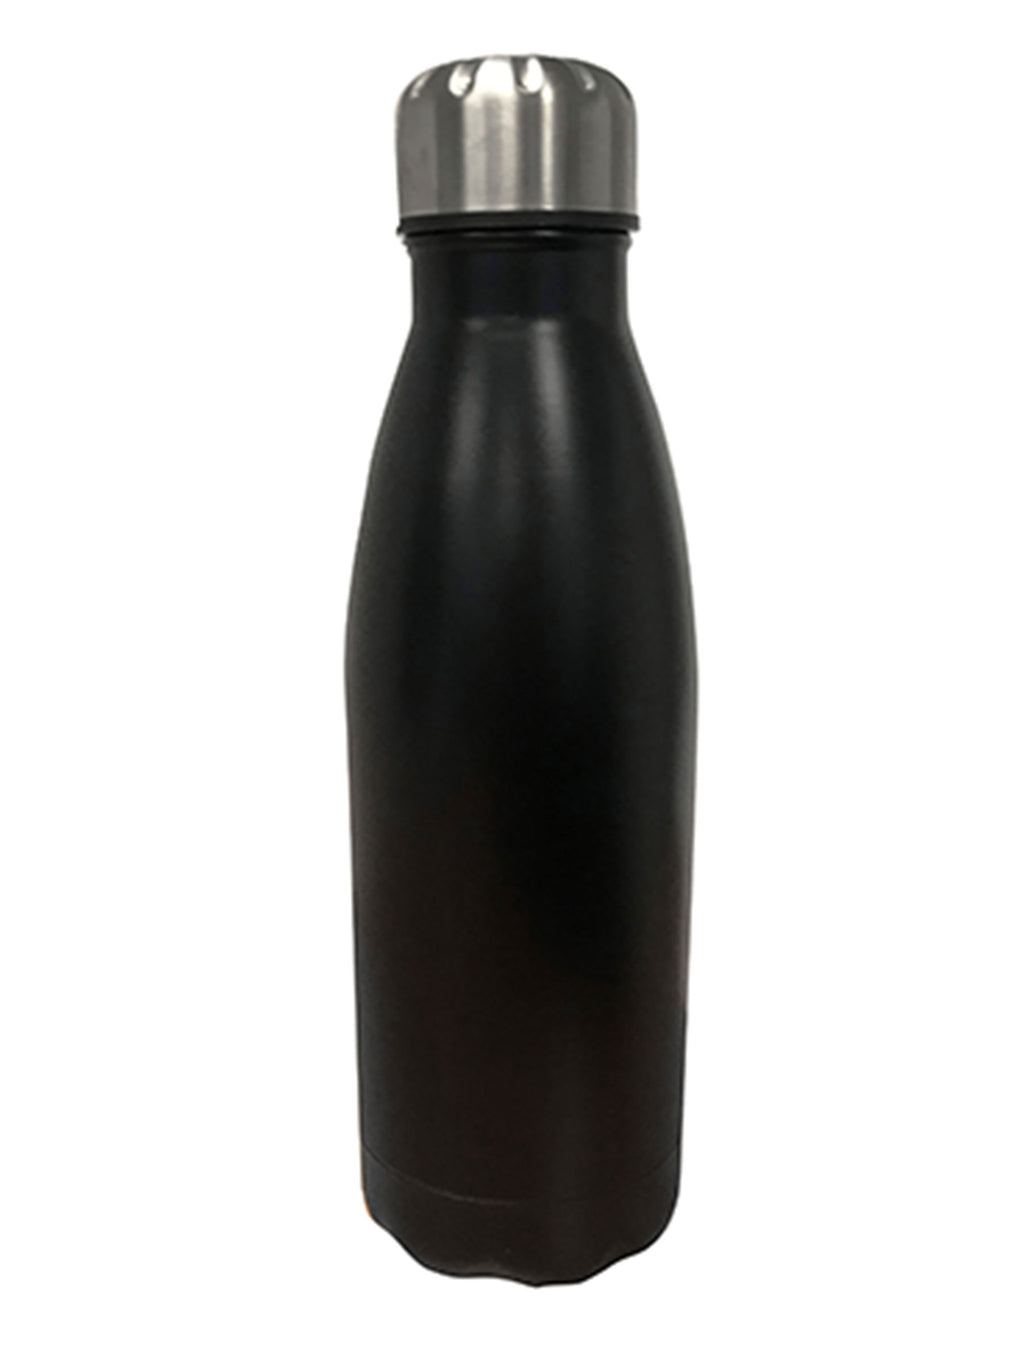 Premium Quality Stainless Steel Drink Bottle - Double Walled - 500ml